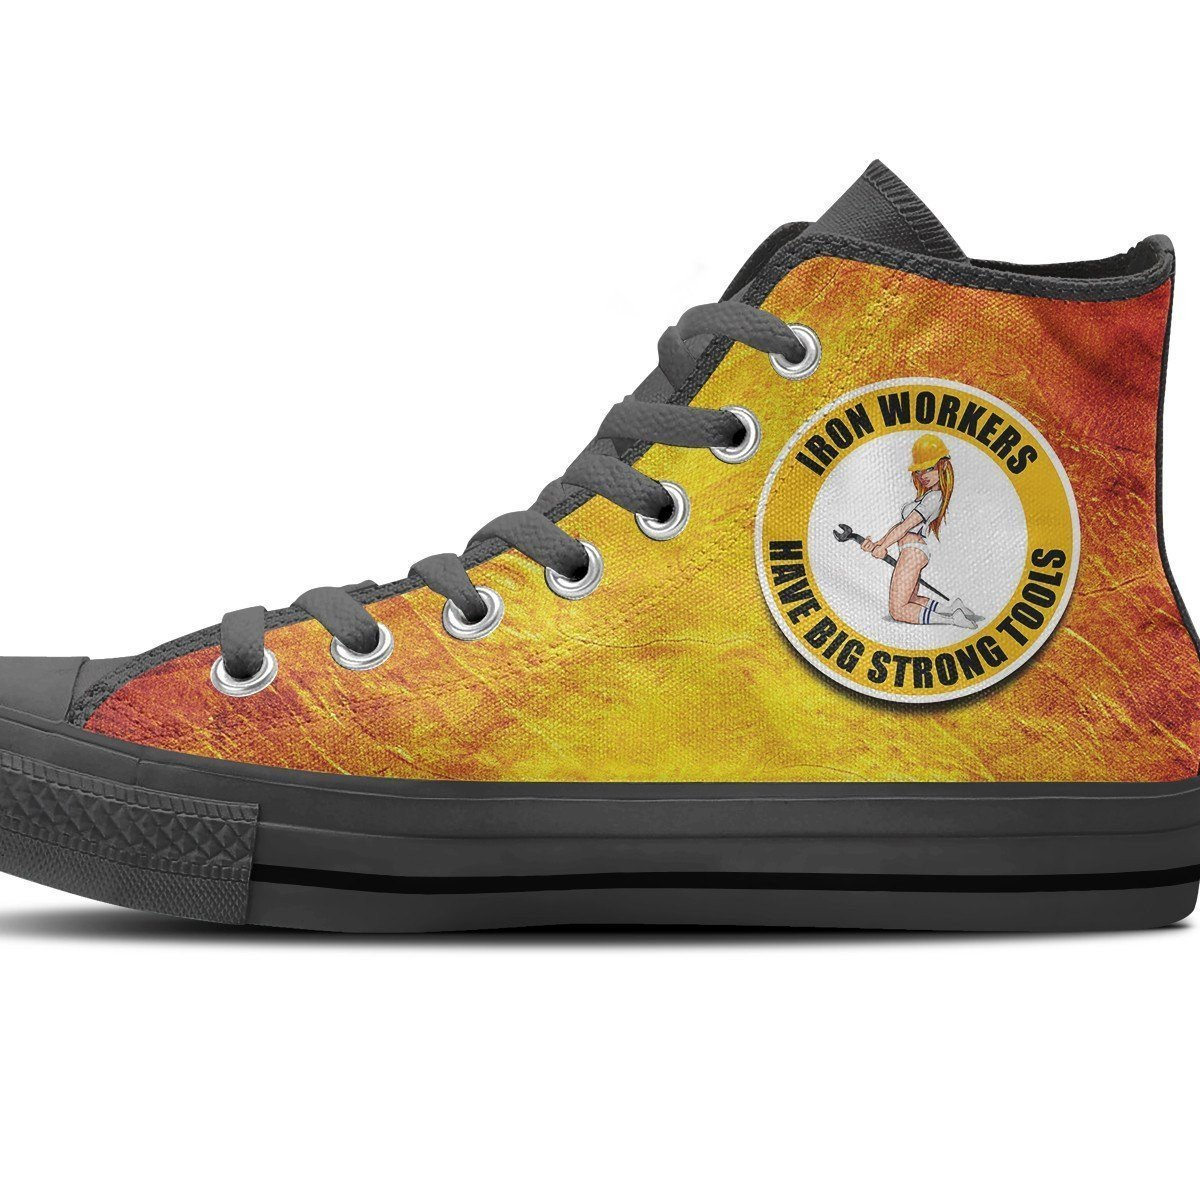 ironworkers strong tools ladies high top sneakers